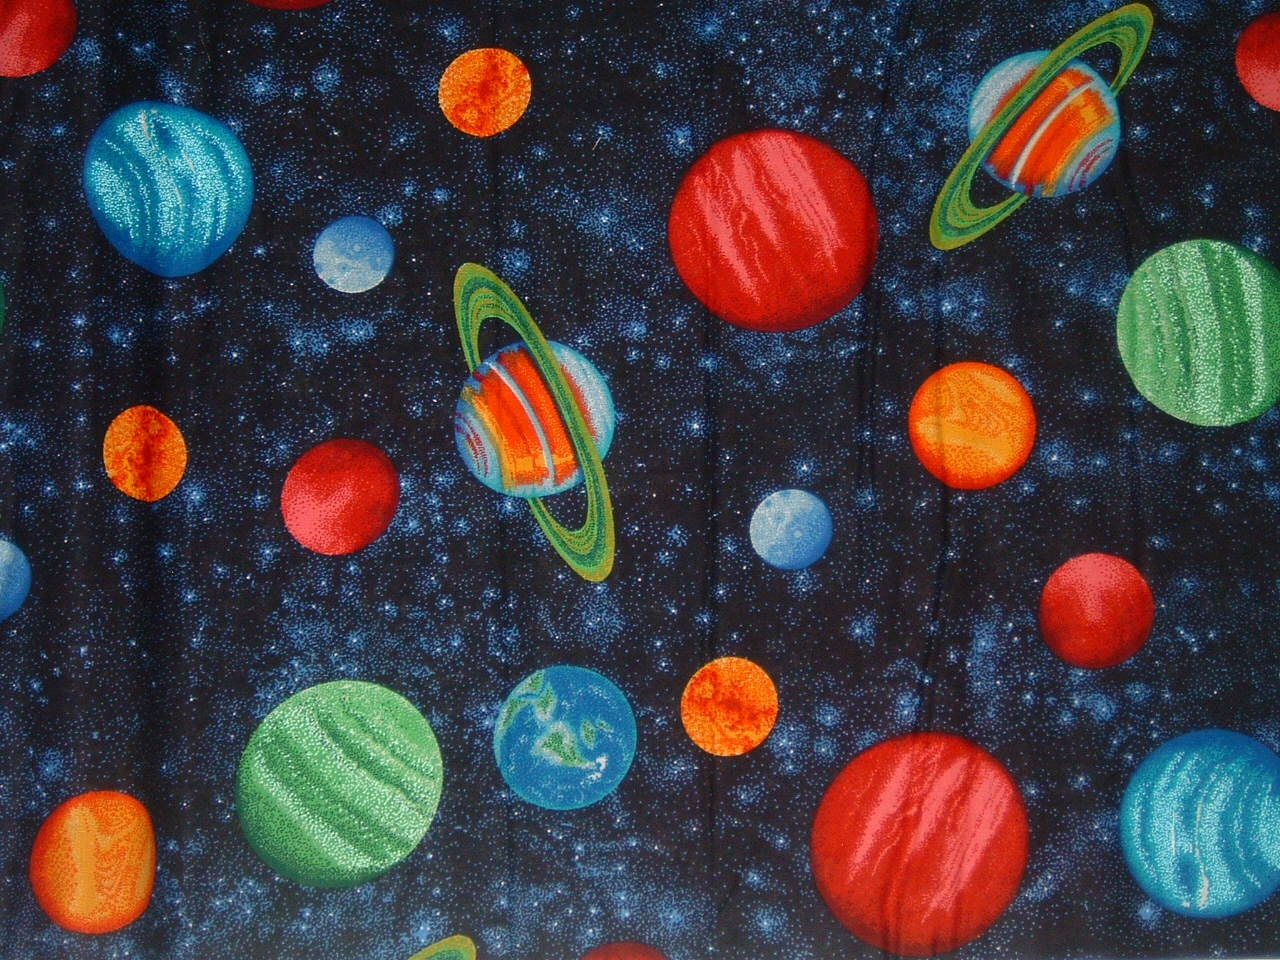 Planet solar system planets earth cotton fabric by the yard by for Solar system fabric panel